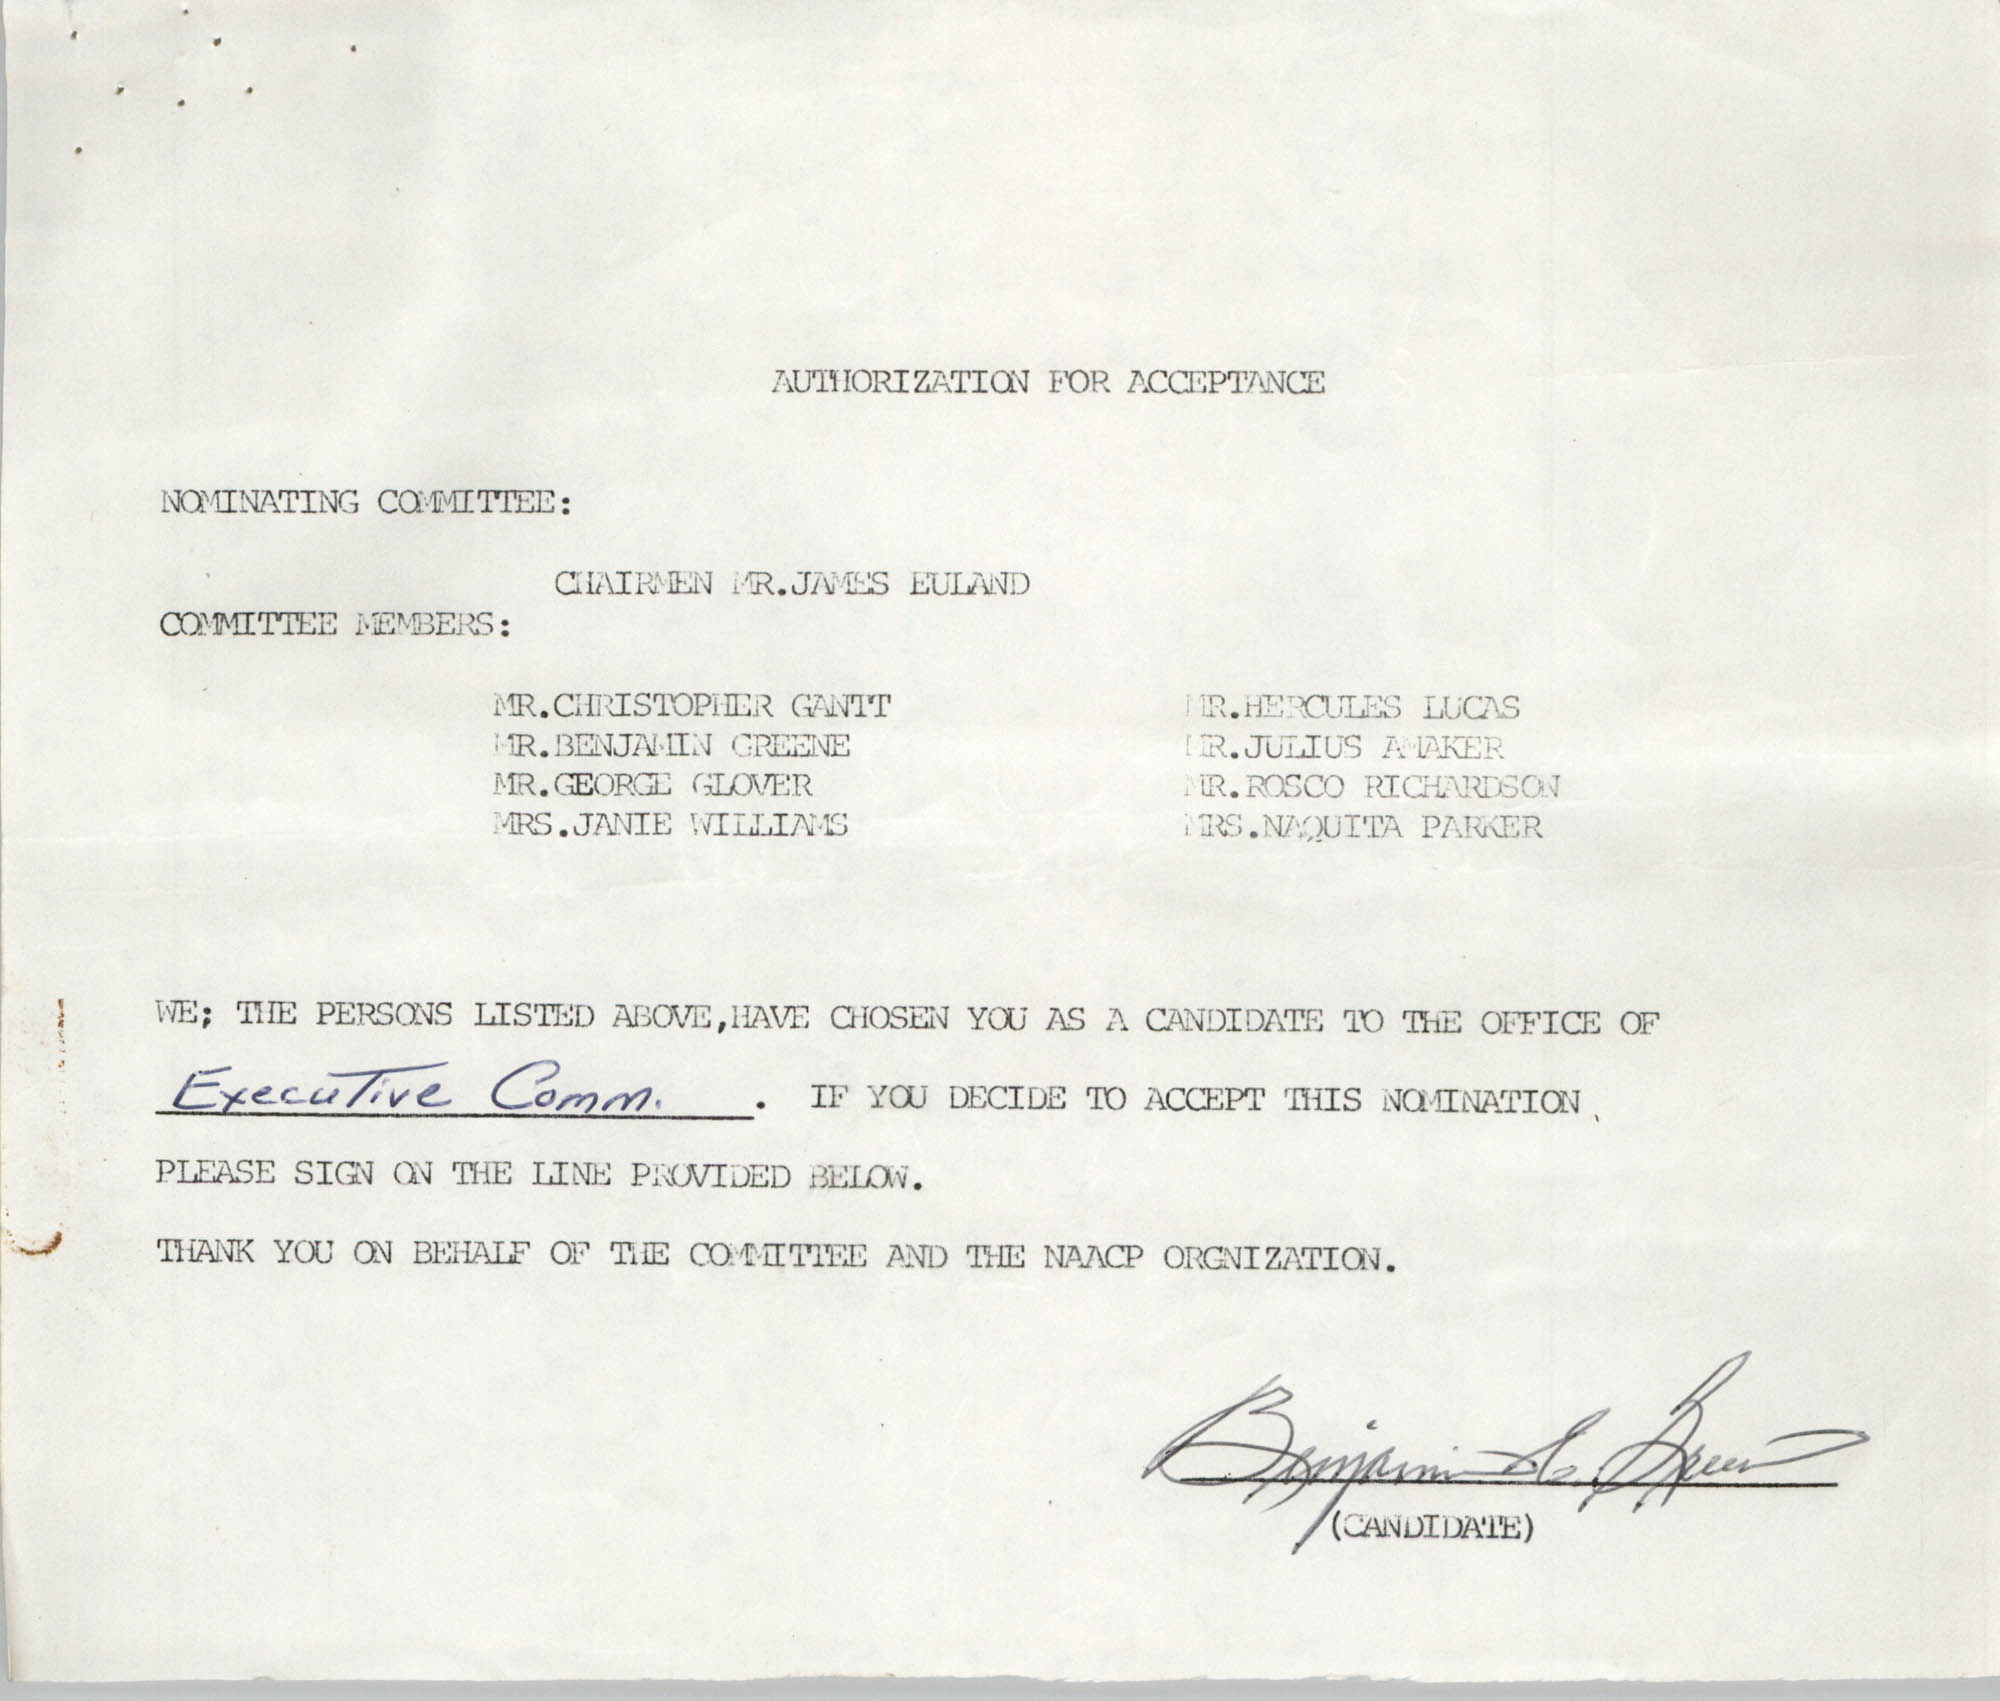 Charleston Branch of the NAACP Election Materials, Authorization for Acceptance for Benjamin Greene